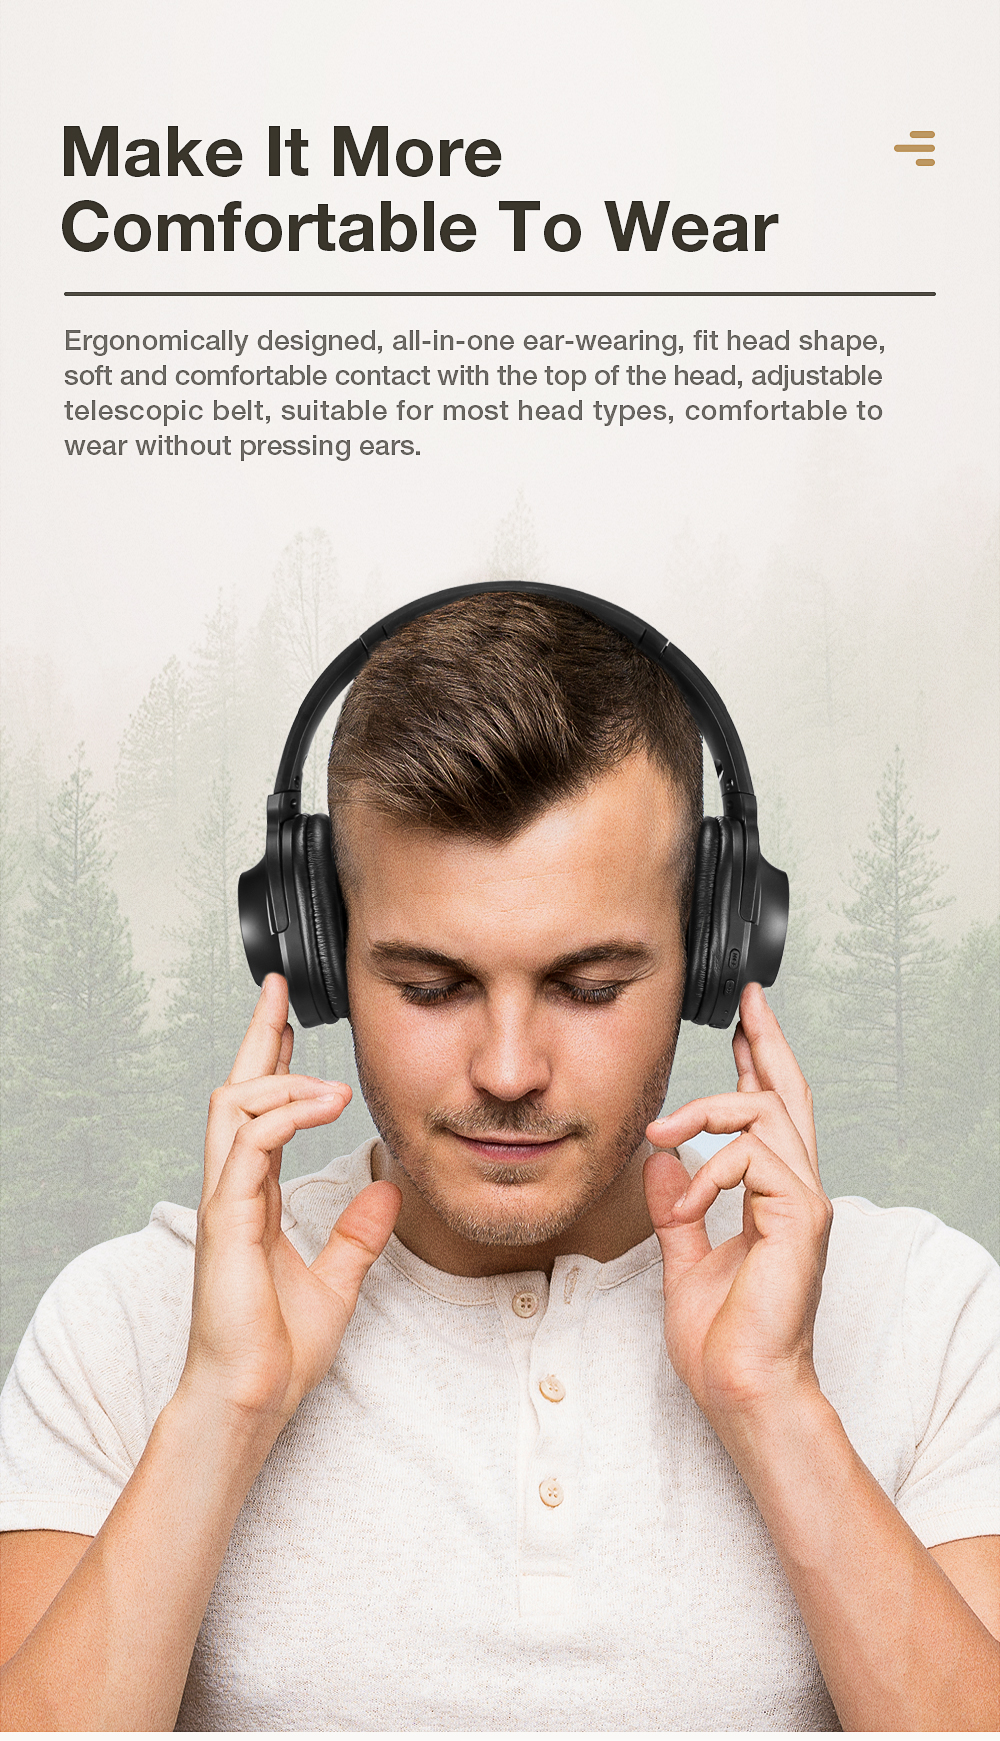 SANLEPUS Bluetooth Wireless Headphones Portable Stereo Headset with Mic For Music Earphone For iPhone Samsung Xiaomi